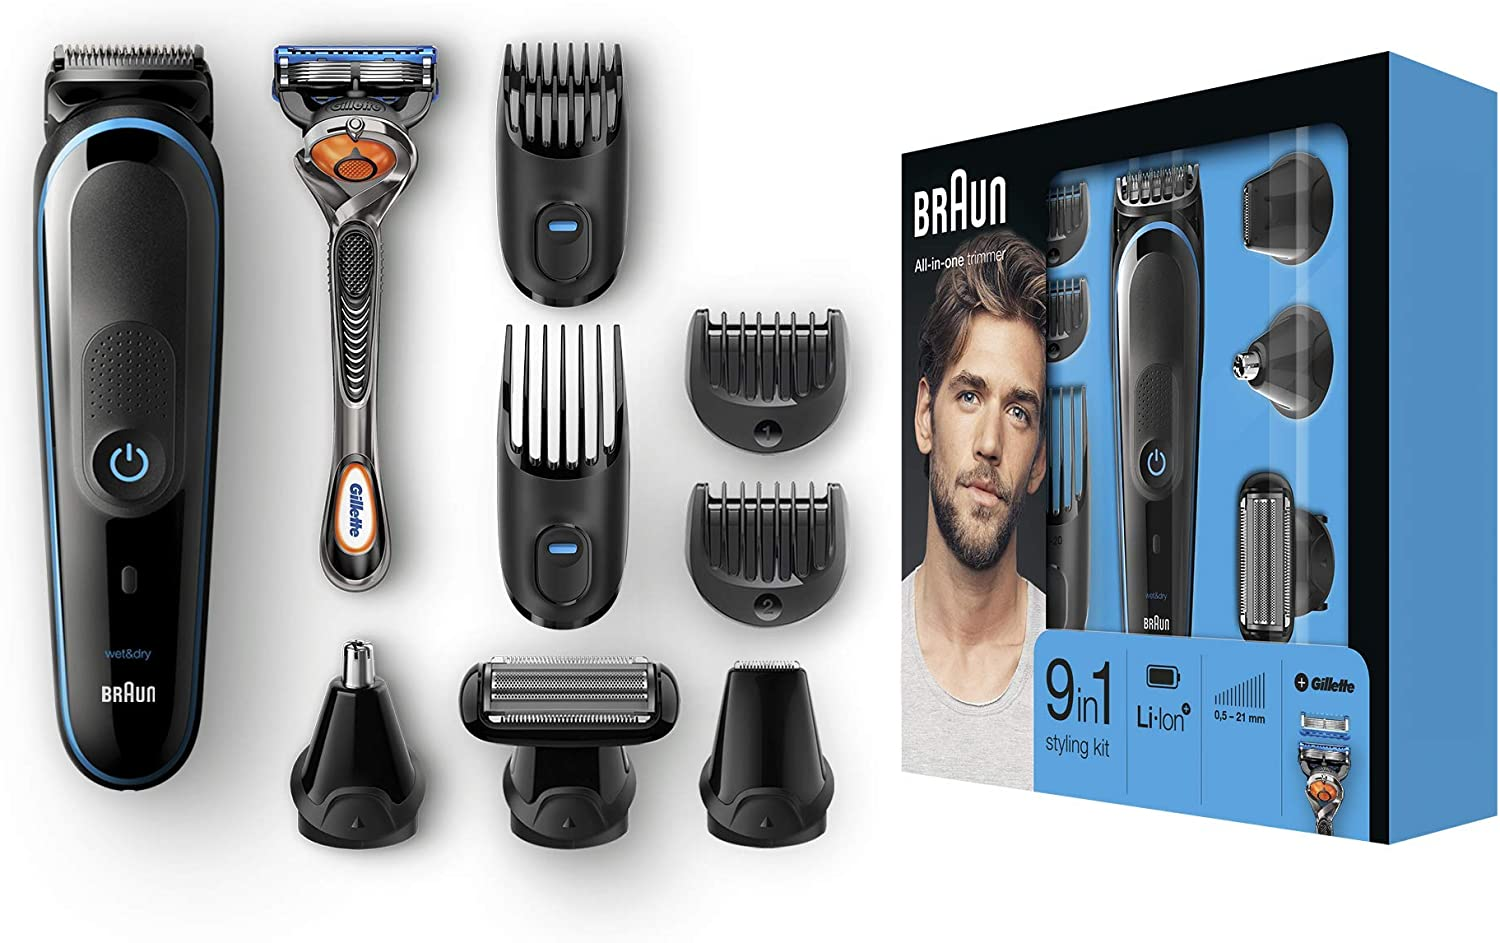 Braun All-in-one MGK5080 depiladora para la barba Mojado y seco ...